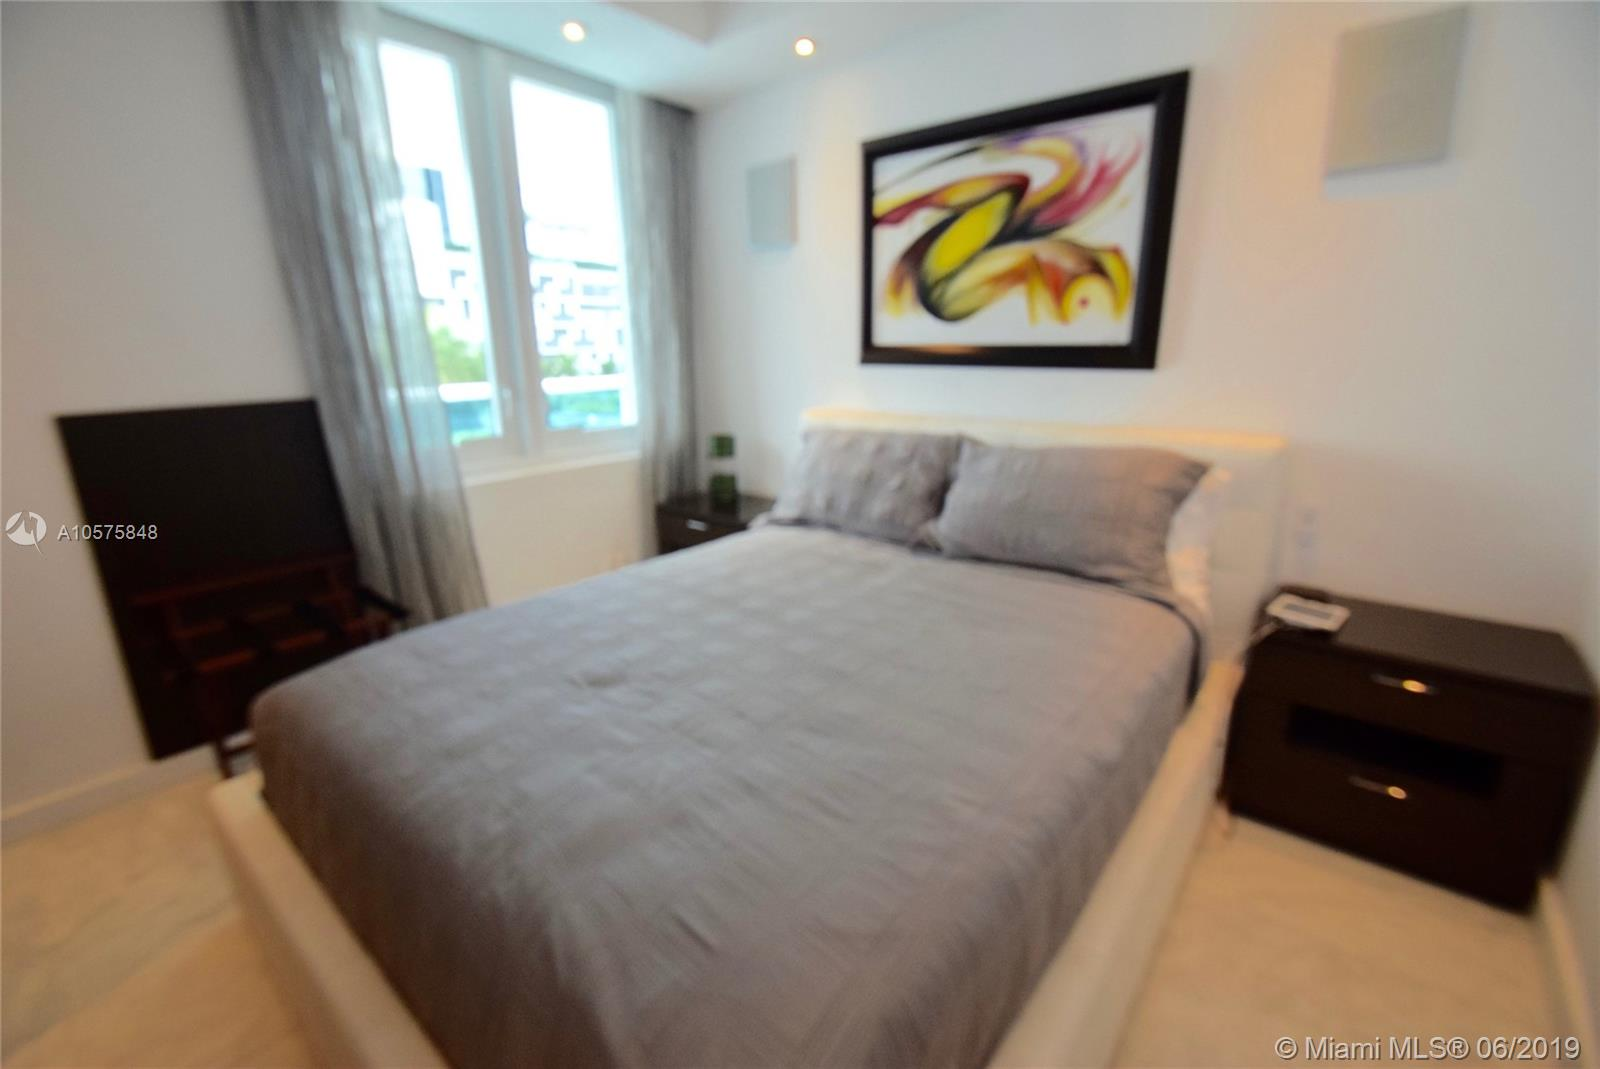 2301 Collins Ave # 307, Miami Beach, Florida 33139, 2 Bedrooms Bedrooms, ,2 BathroomsBathrooms,Residential Lease,For Rent,2301 Collins Ave # 307,A10575848